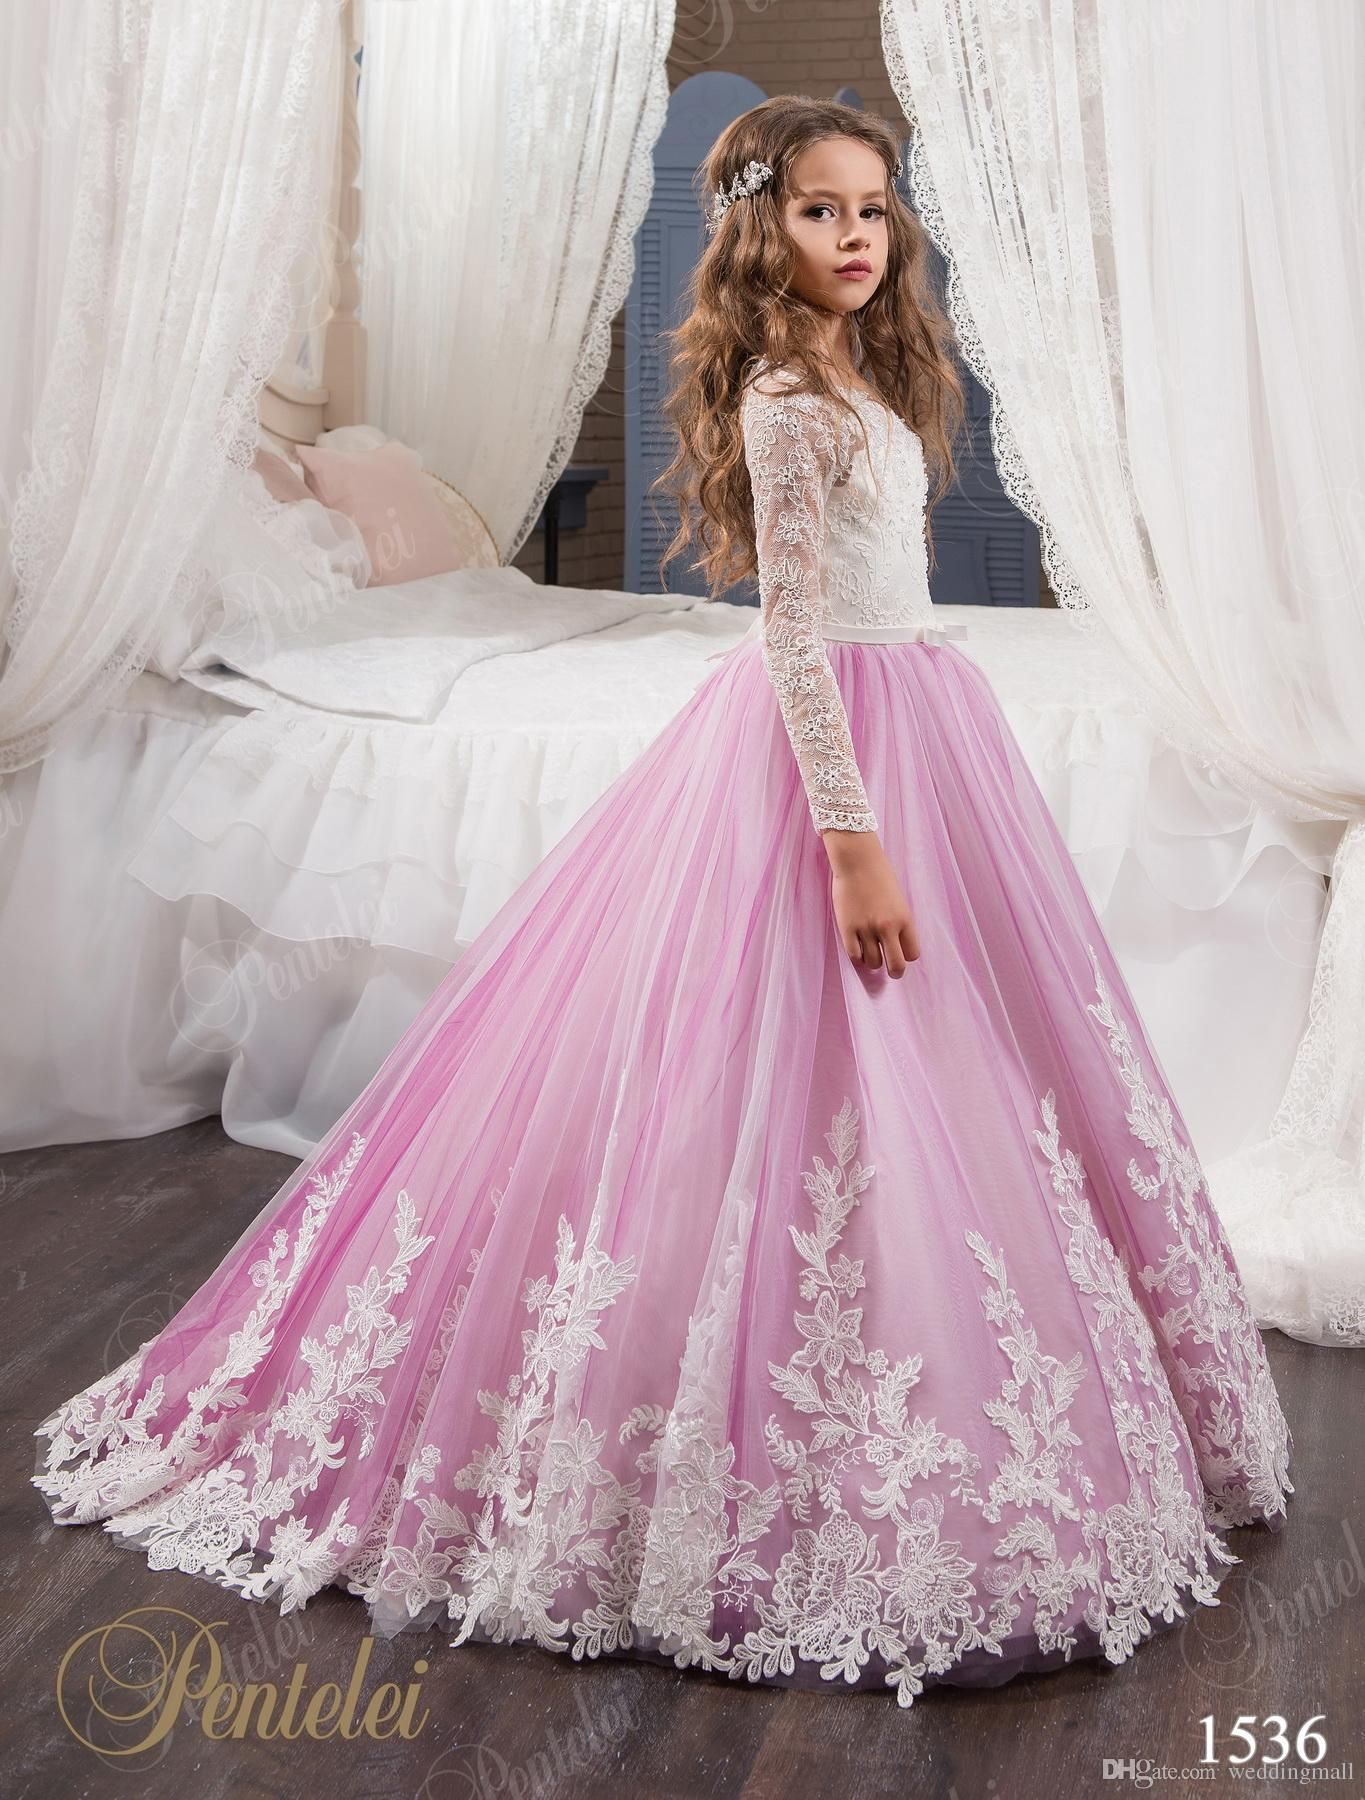 0140c6e21612b Vintage Princess Floral Lace Arabic 2017 Flower Girl Dresses Long Sleeves  Tulle Child Dresses Beautiful Flower Girl Wedding Dresses F0678